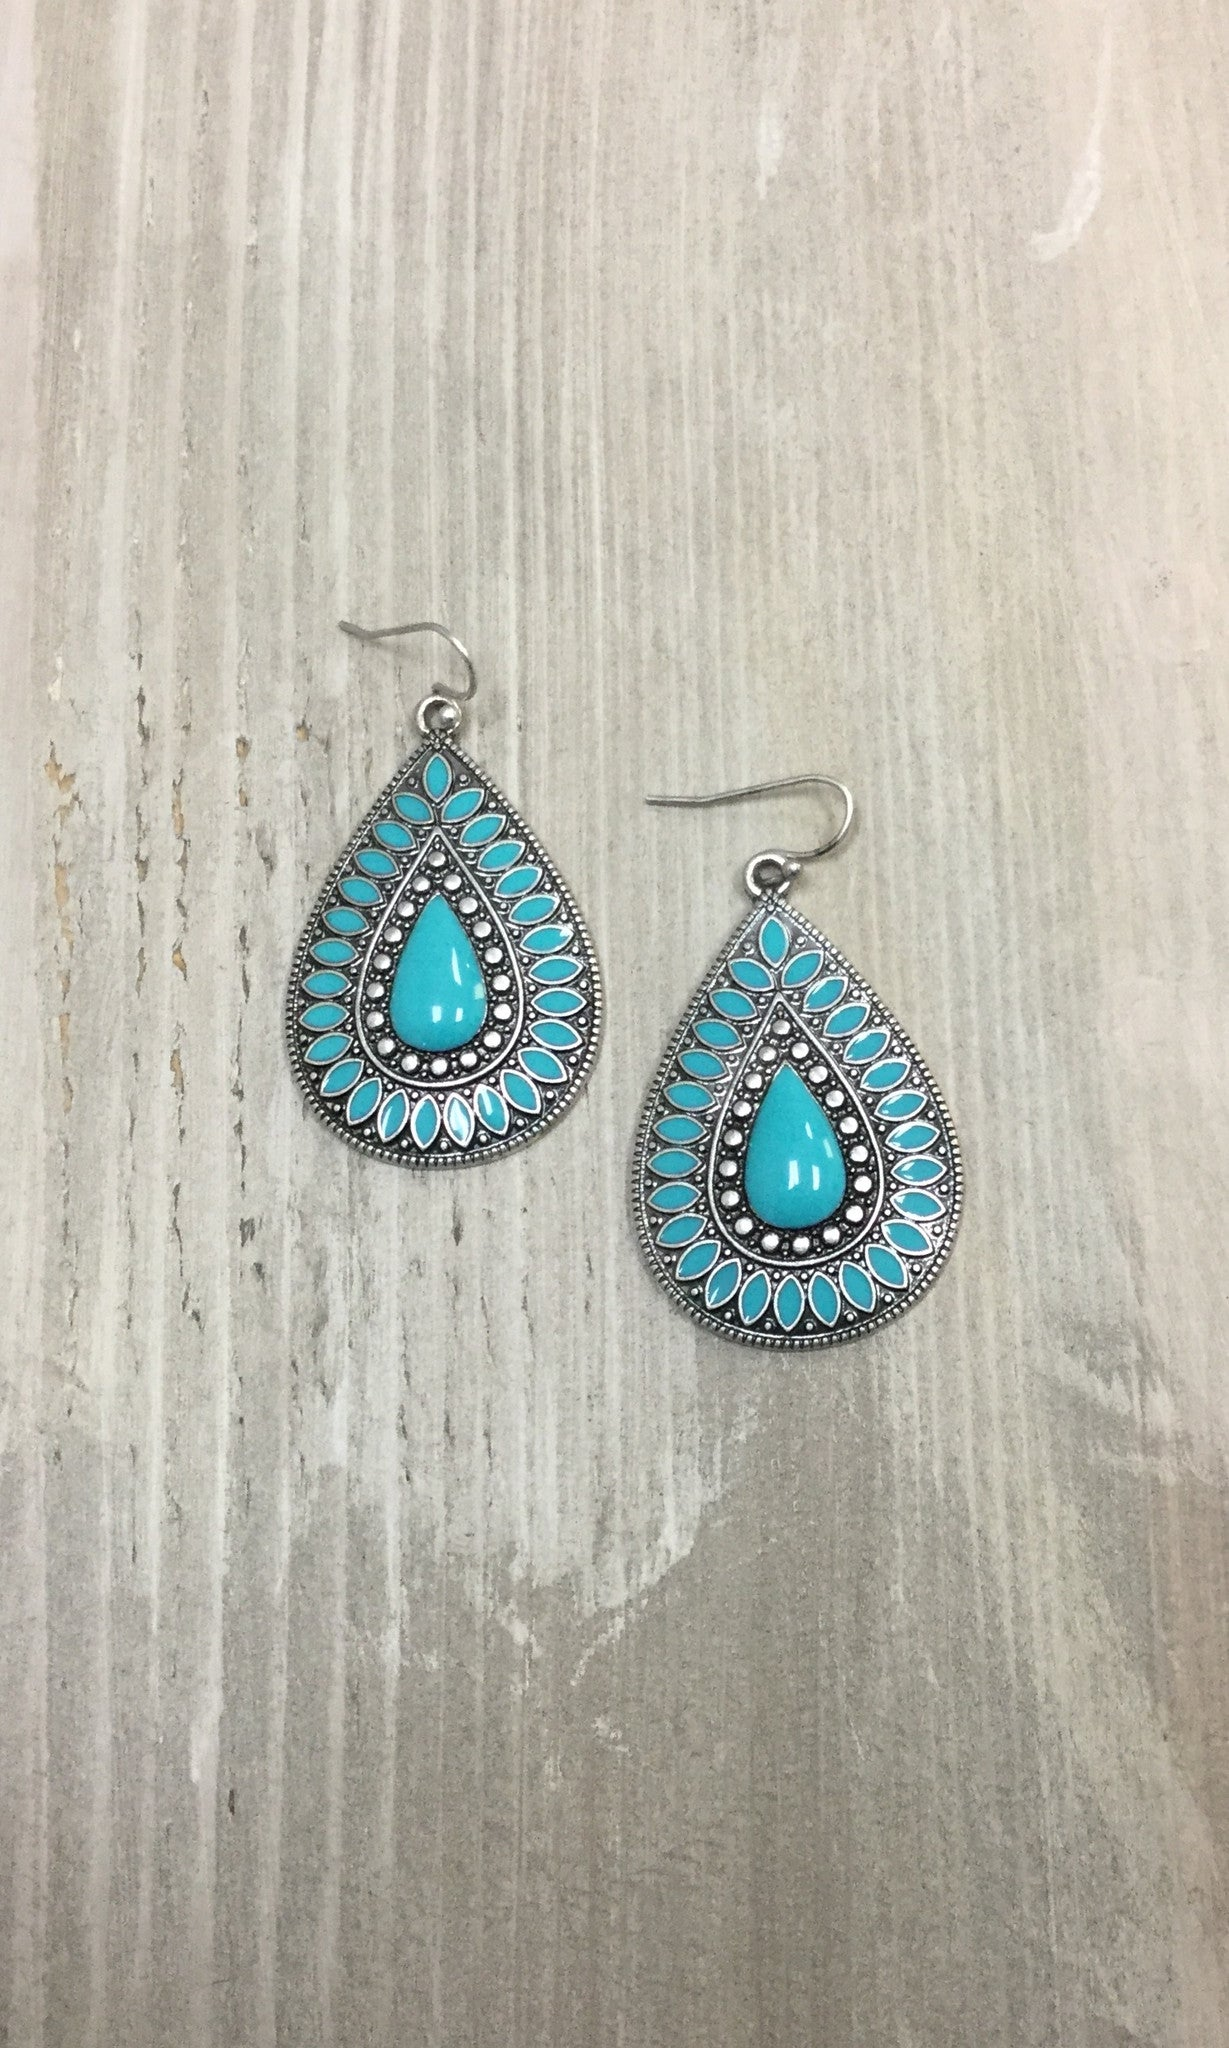 Turquoise & Silver Teardrop Earrings